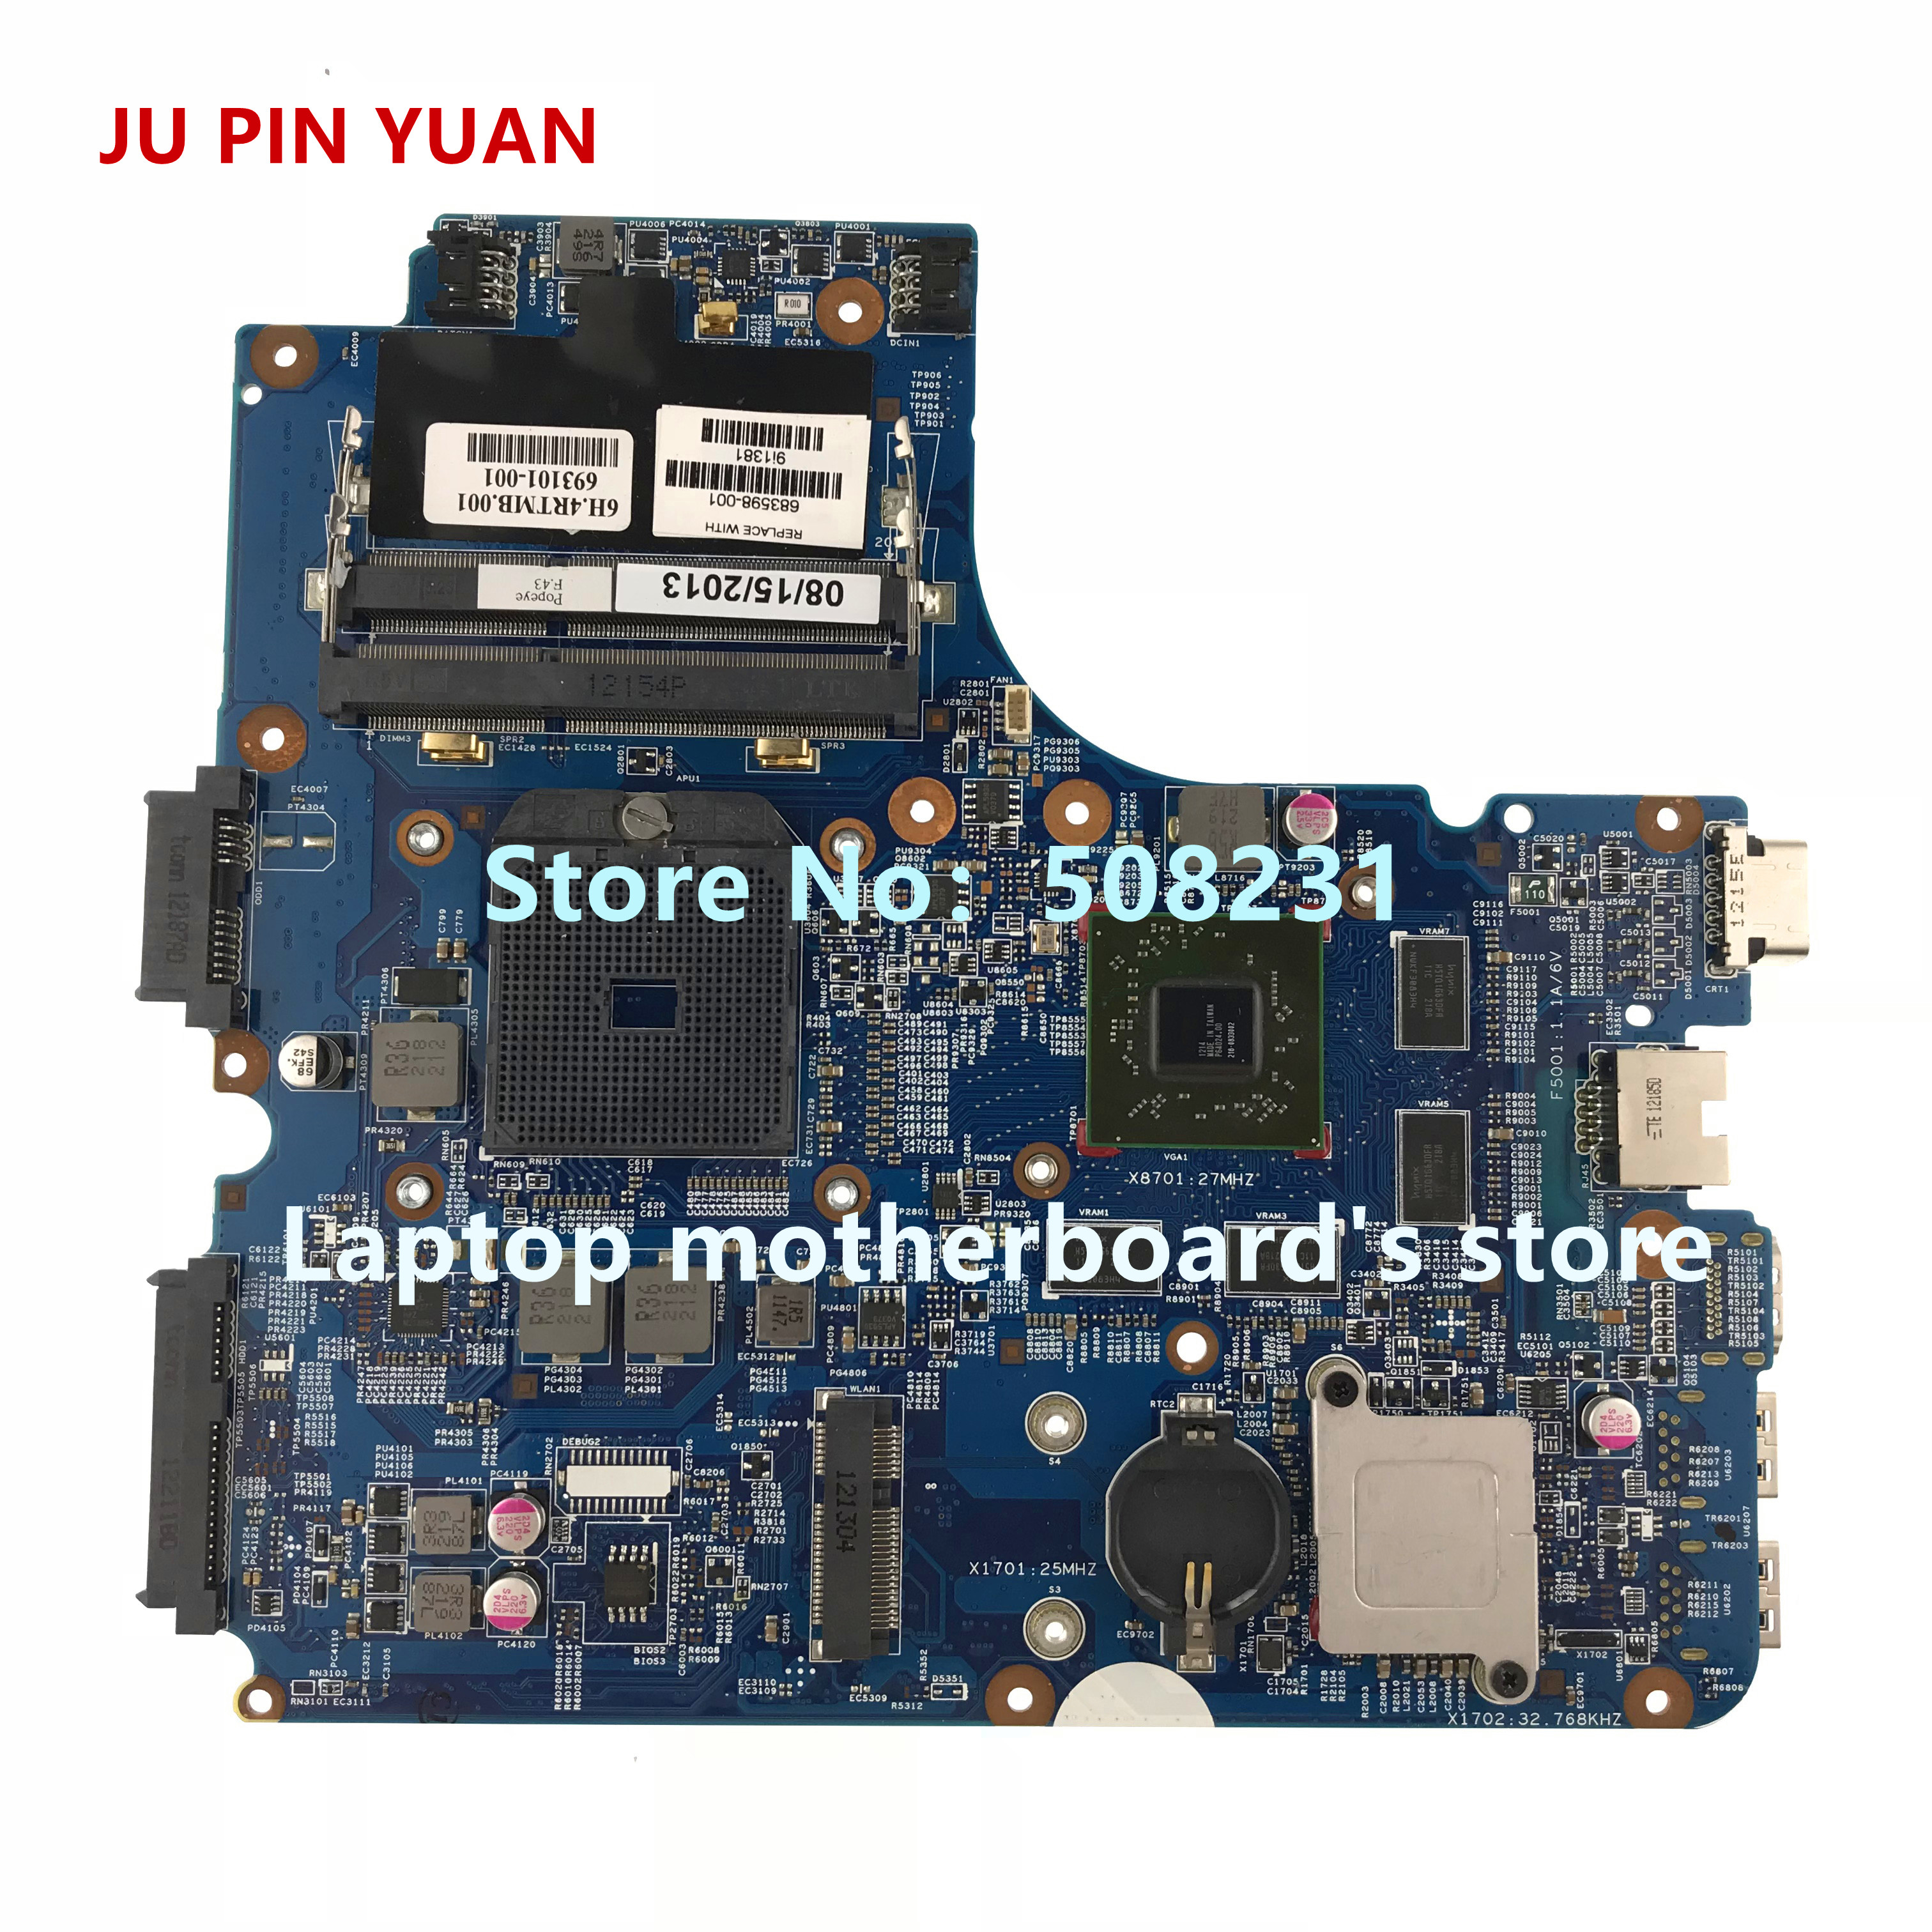 JU PIN YUAN 683598-501 for HP Probook 4445s 4545s 4446S Laptop motherboard 683598-001 683598-601 All functions fully TestedJU PIN YUAN 683598-501 for HP Probook 4445s 4545s 4446S Laptop motherboard 683598-001 683598-601 All functions fully Tested